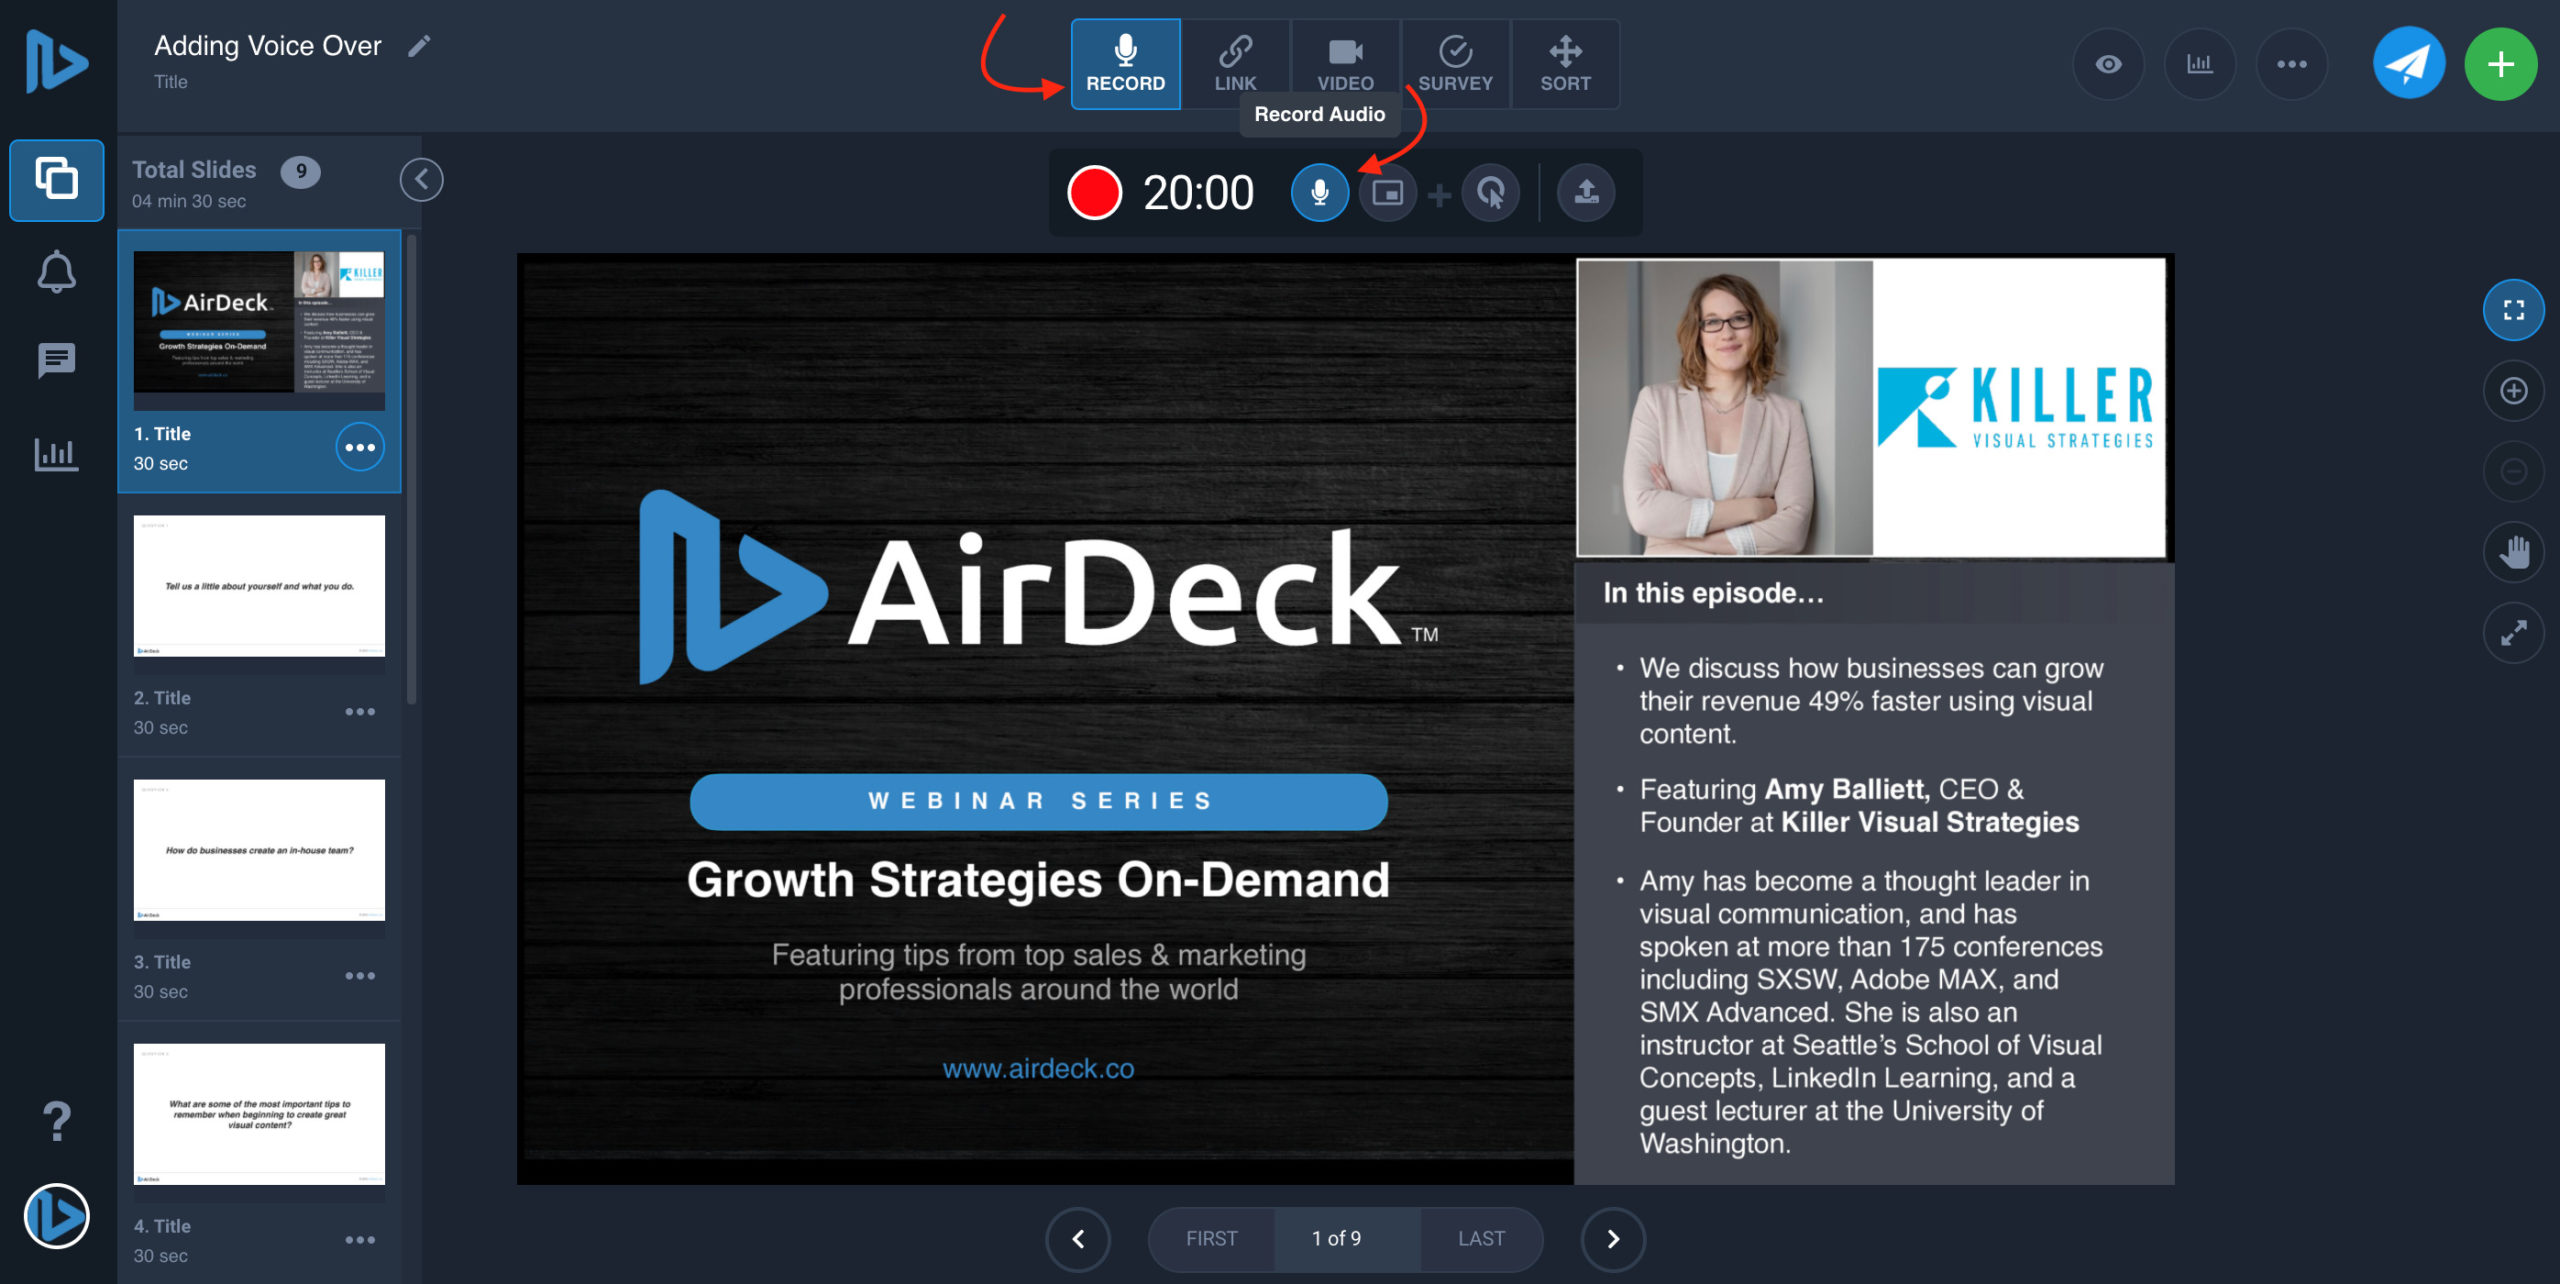 Arrow pointing to record button on AirDeck user interface